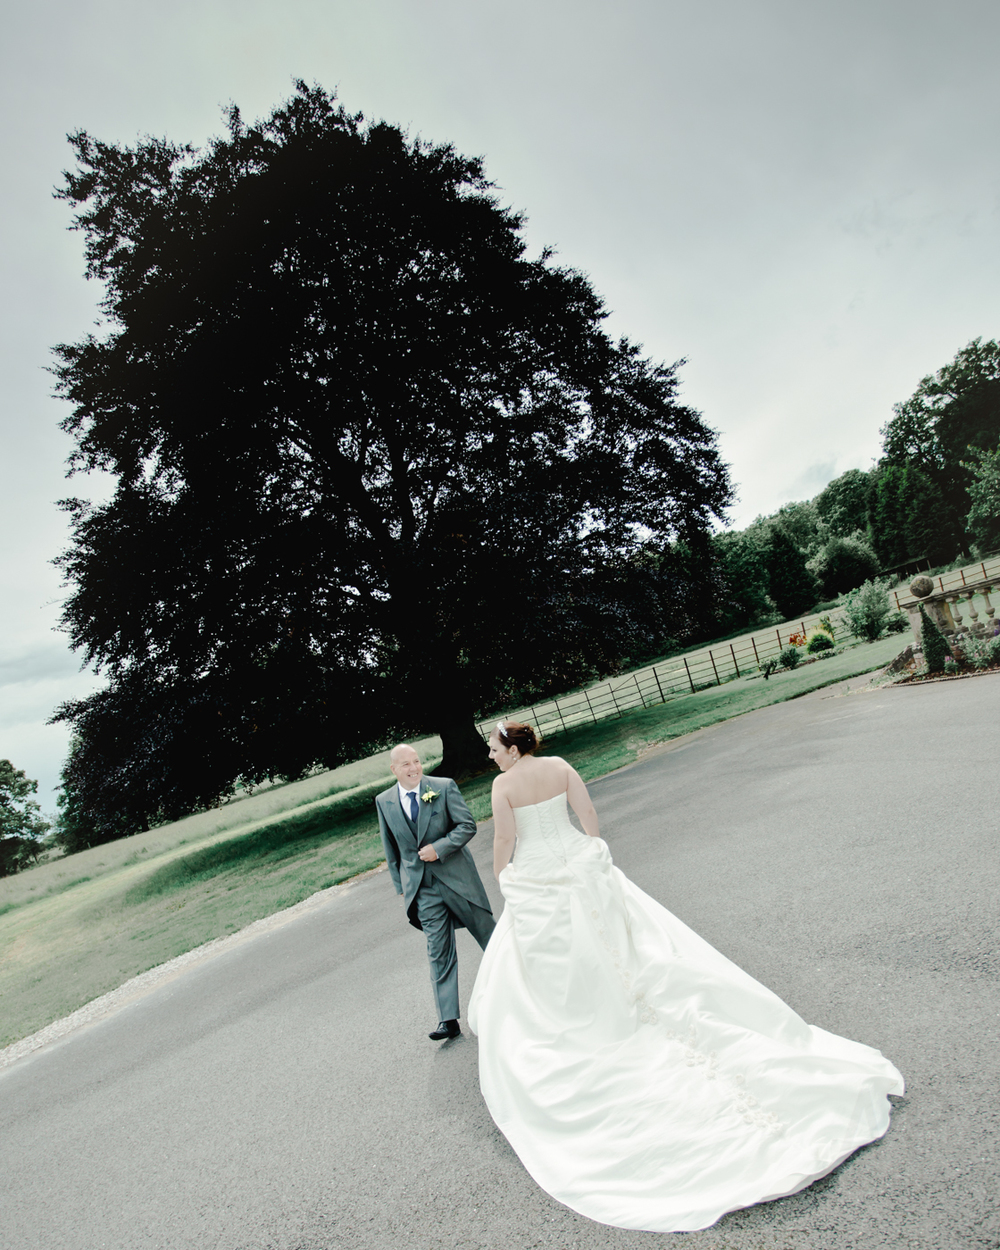 345 - Chris and Natalies Wedding (MAIN) - DO NOT SHARE THIS IMAGES ONLINE -0642.JPG